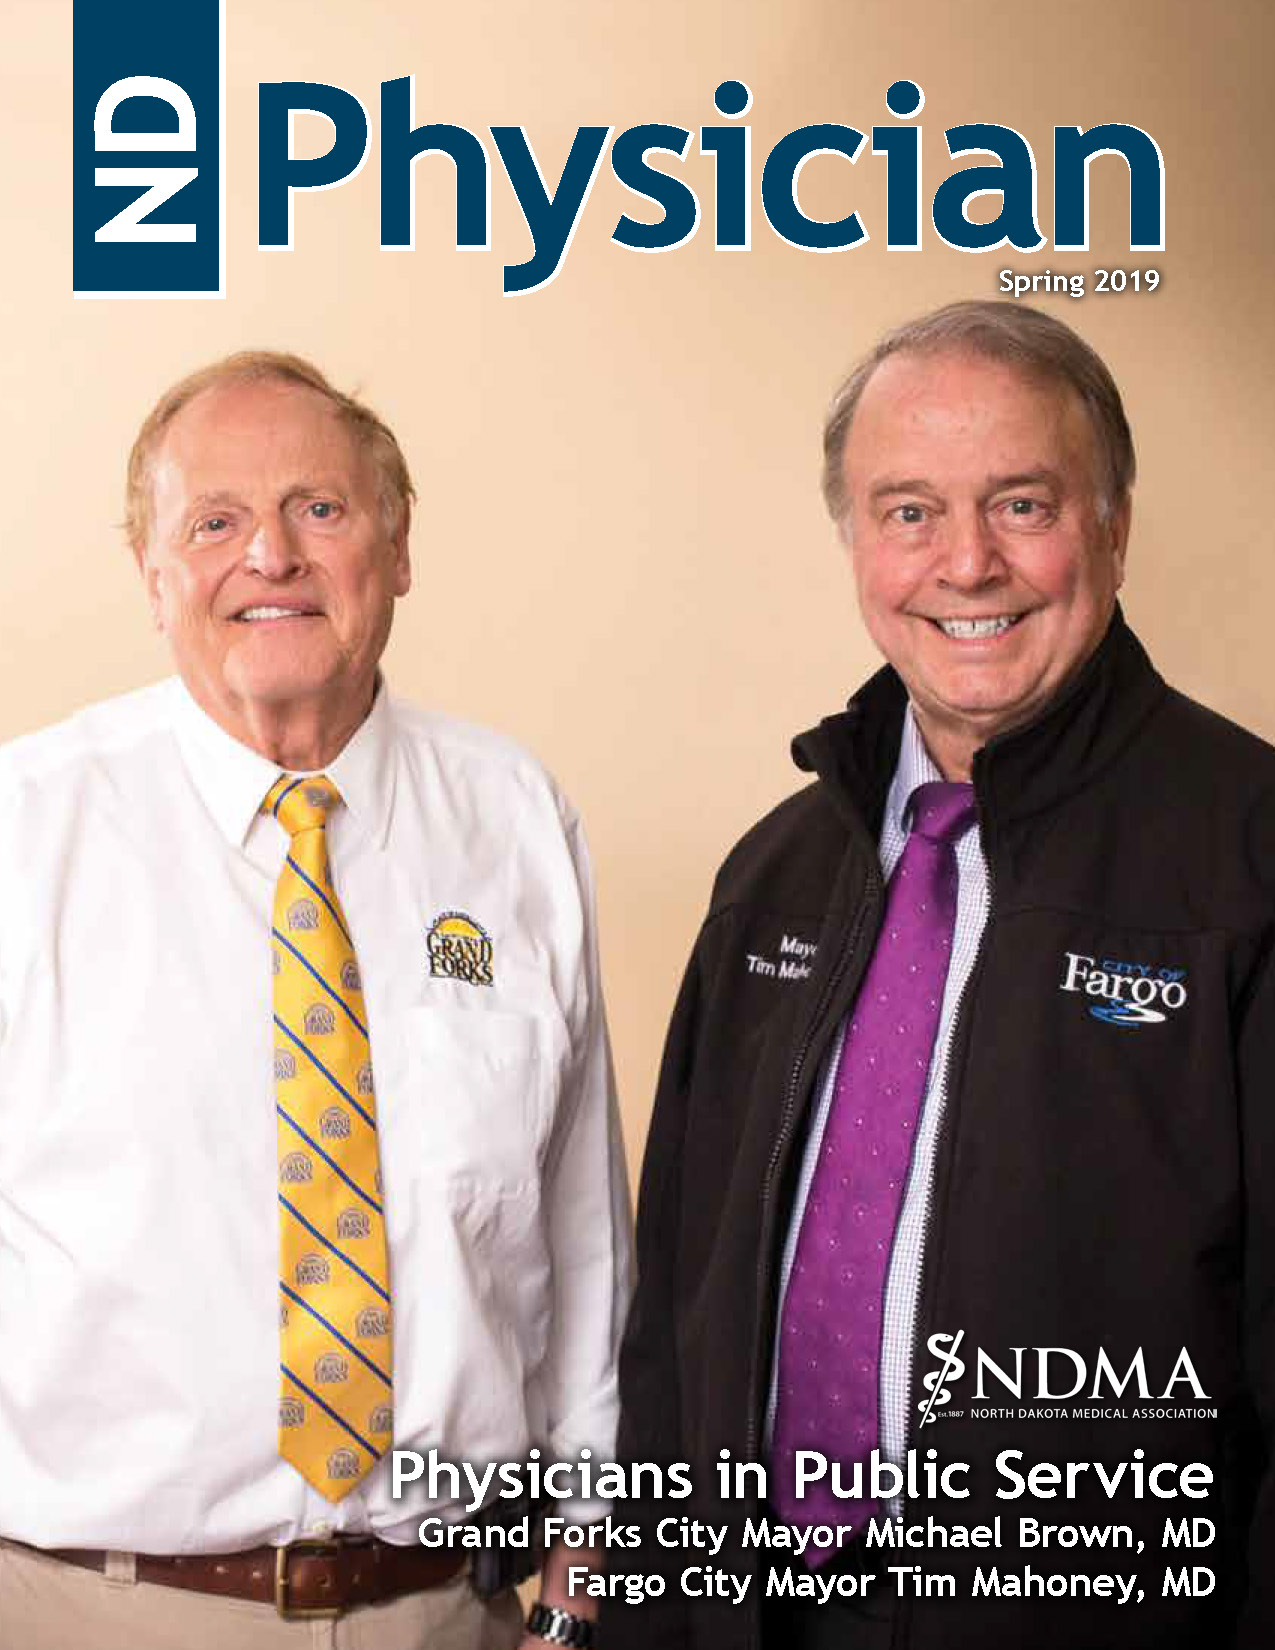 ND Physician Spring 2019 magazine cover